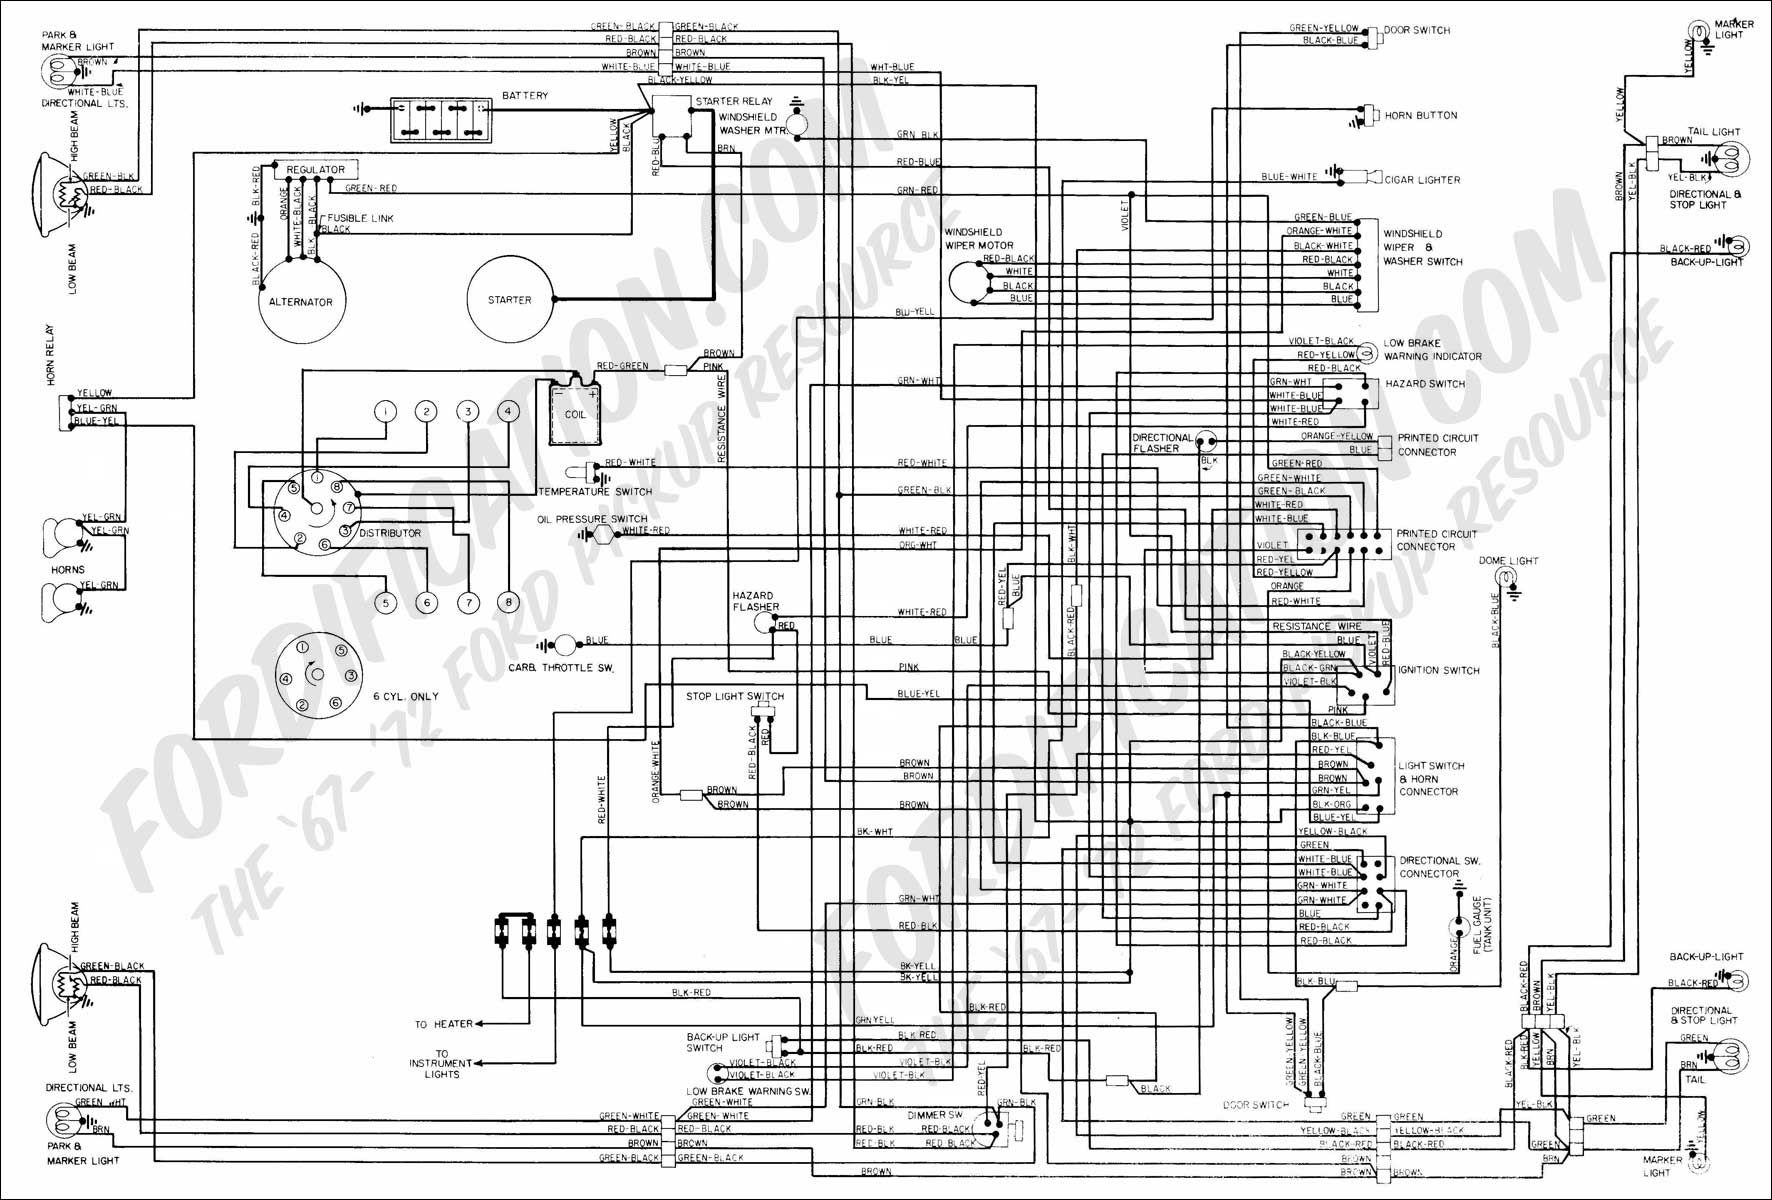 be873db495753211c2fc9a563f039b29 solenoid 1971 f250 1971 ford f100 wiring diagram www ford Ford Tempo Alternator Wiring Diagram at edmiracle.co